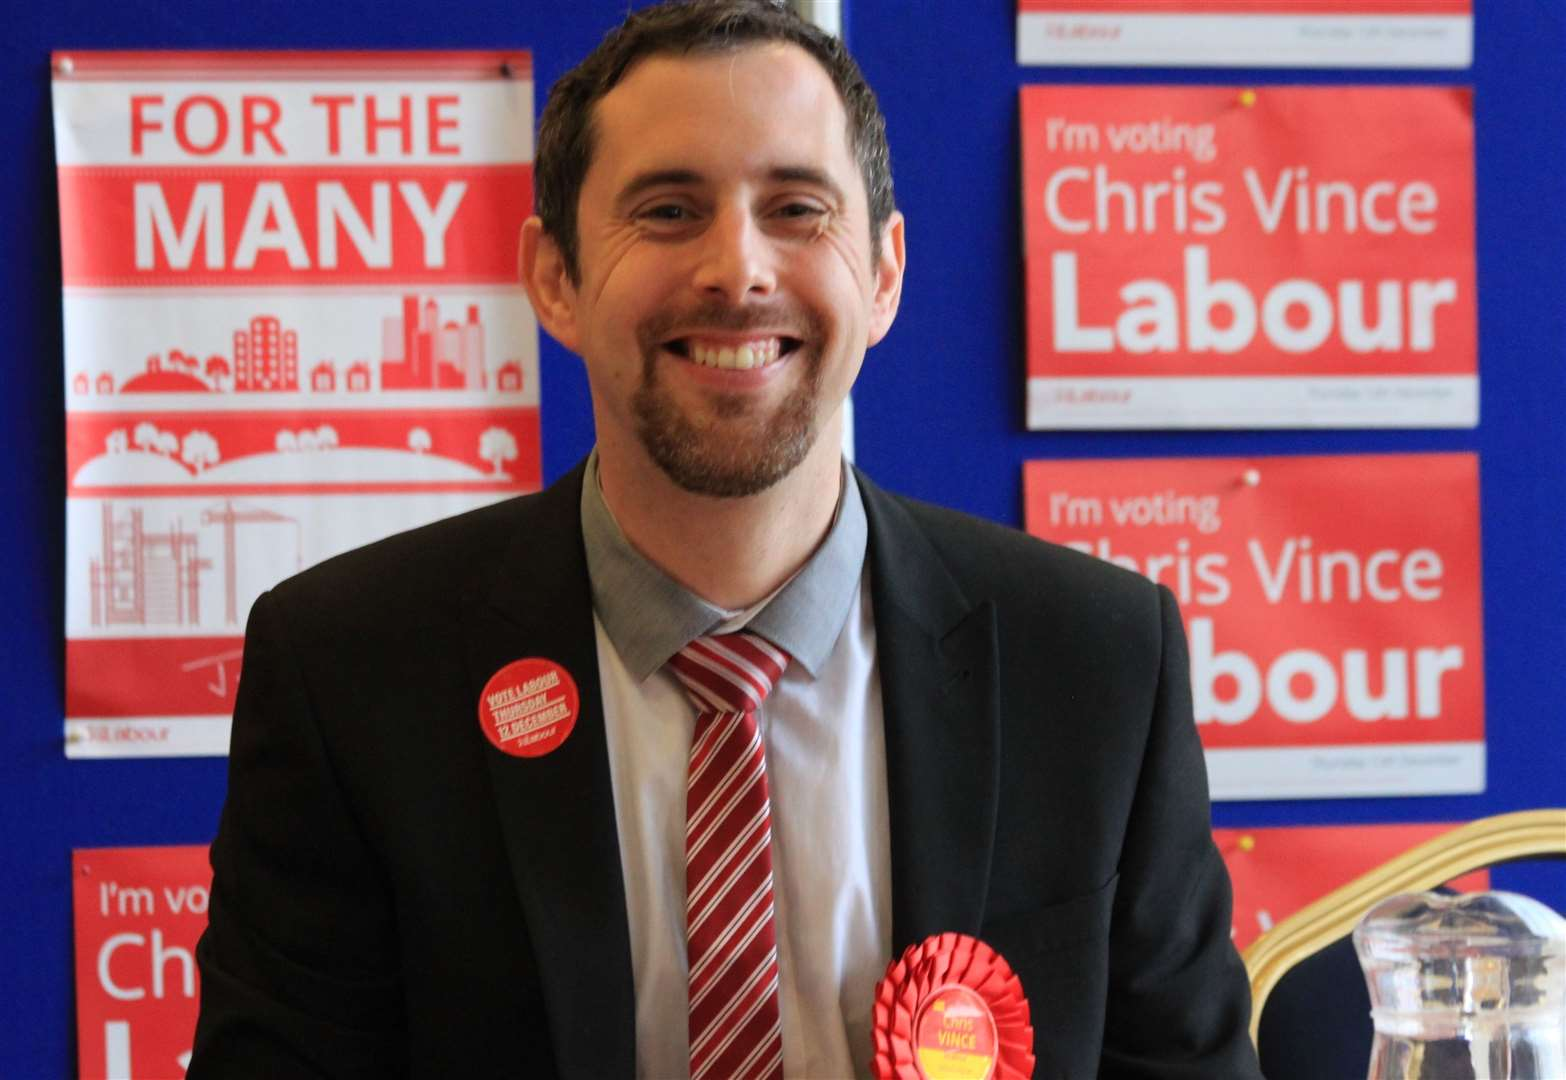 Labour candidate for Stortford sets out pro-Remain stance at campaign launch